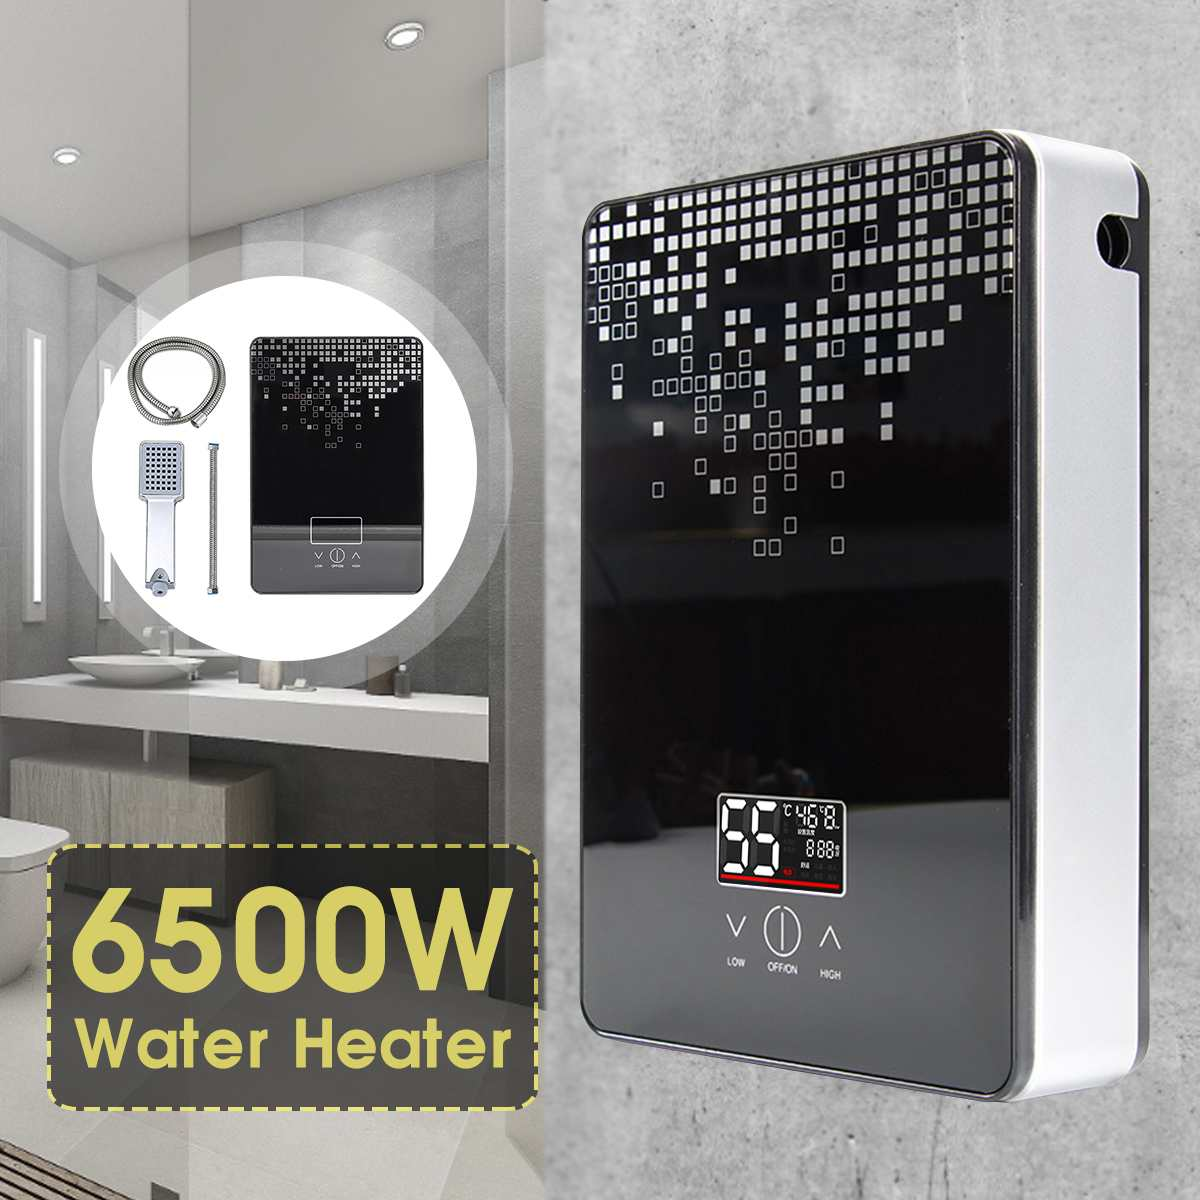 Electric Hot Water Heater 6500W 220V Tankless Instant Boiler Bathroom Shower Set Thermostat Safe Intelligent Automatically Fauce